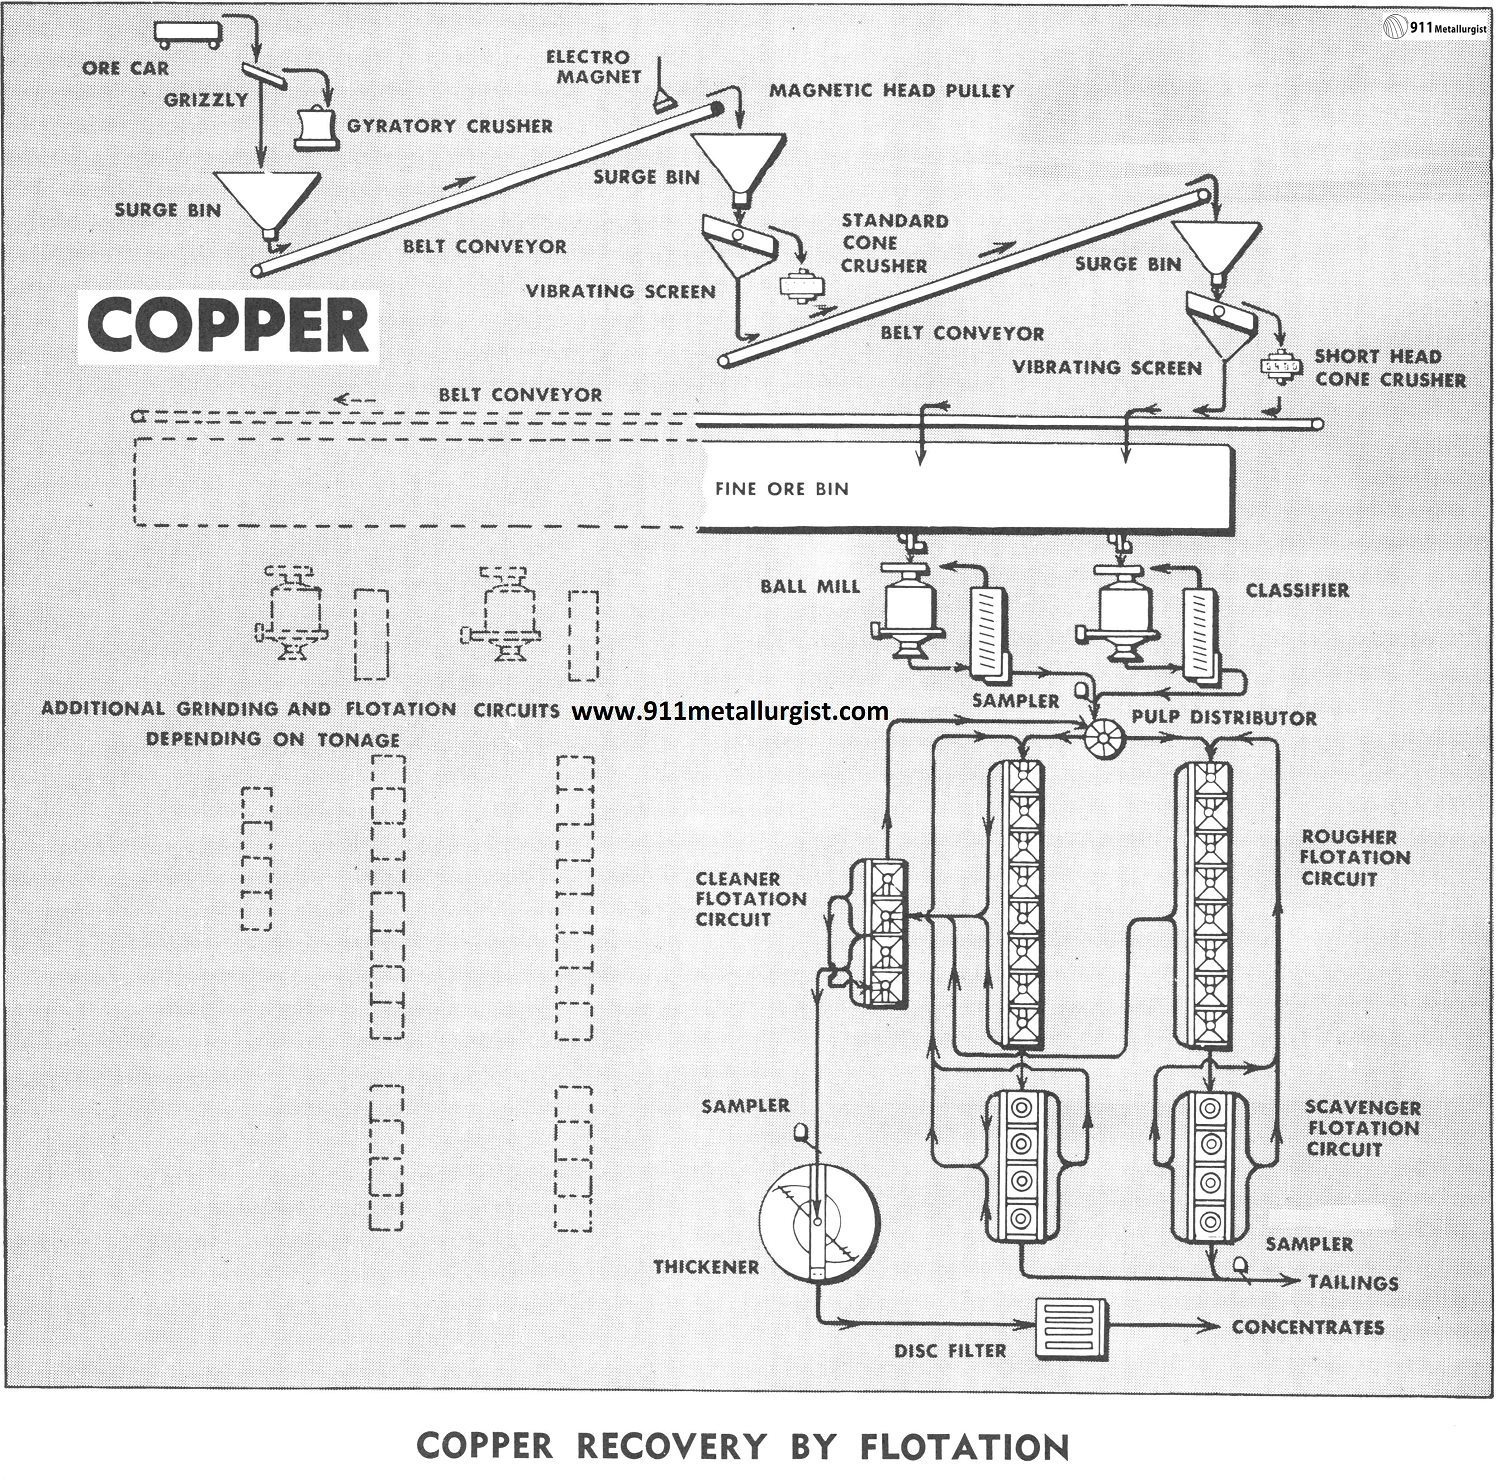 Copper Recovery by Flotation